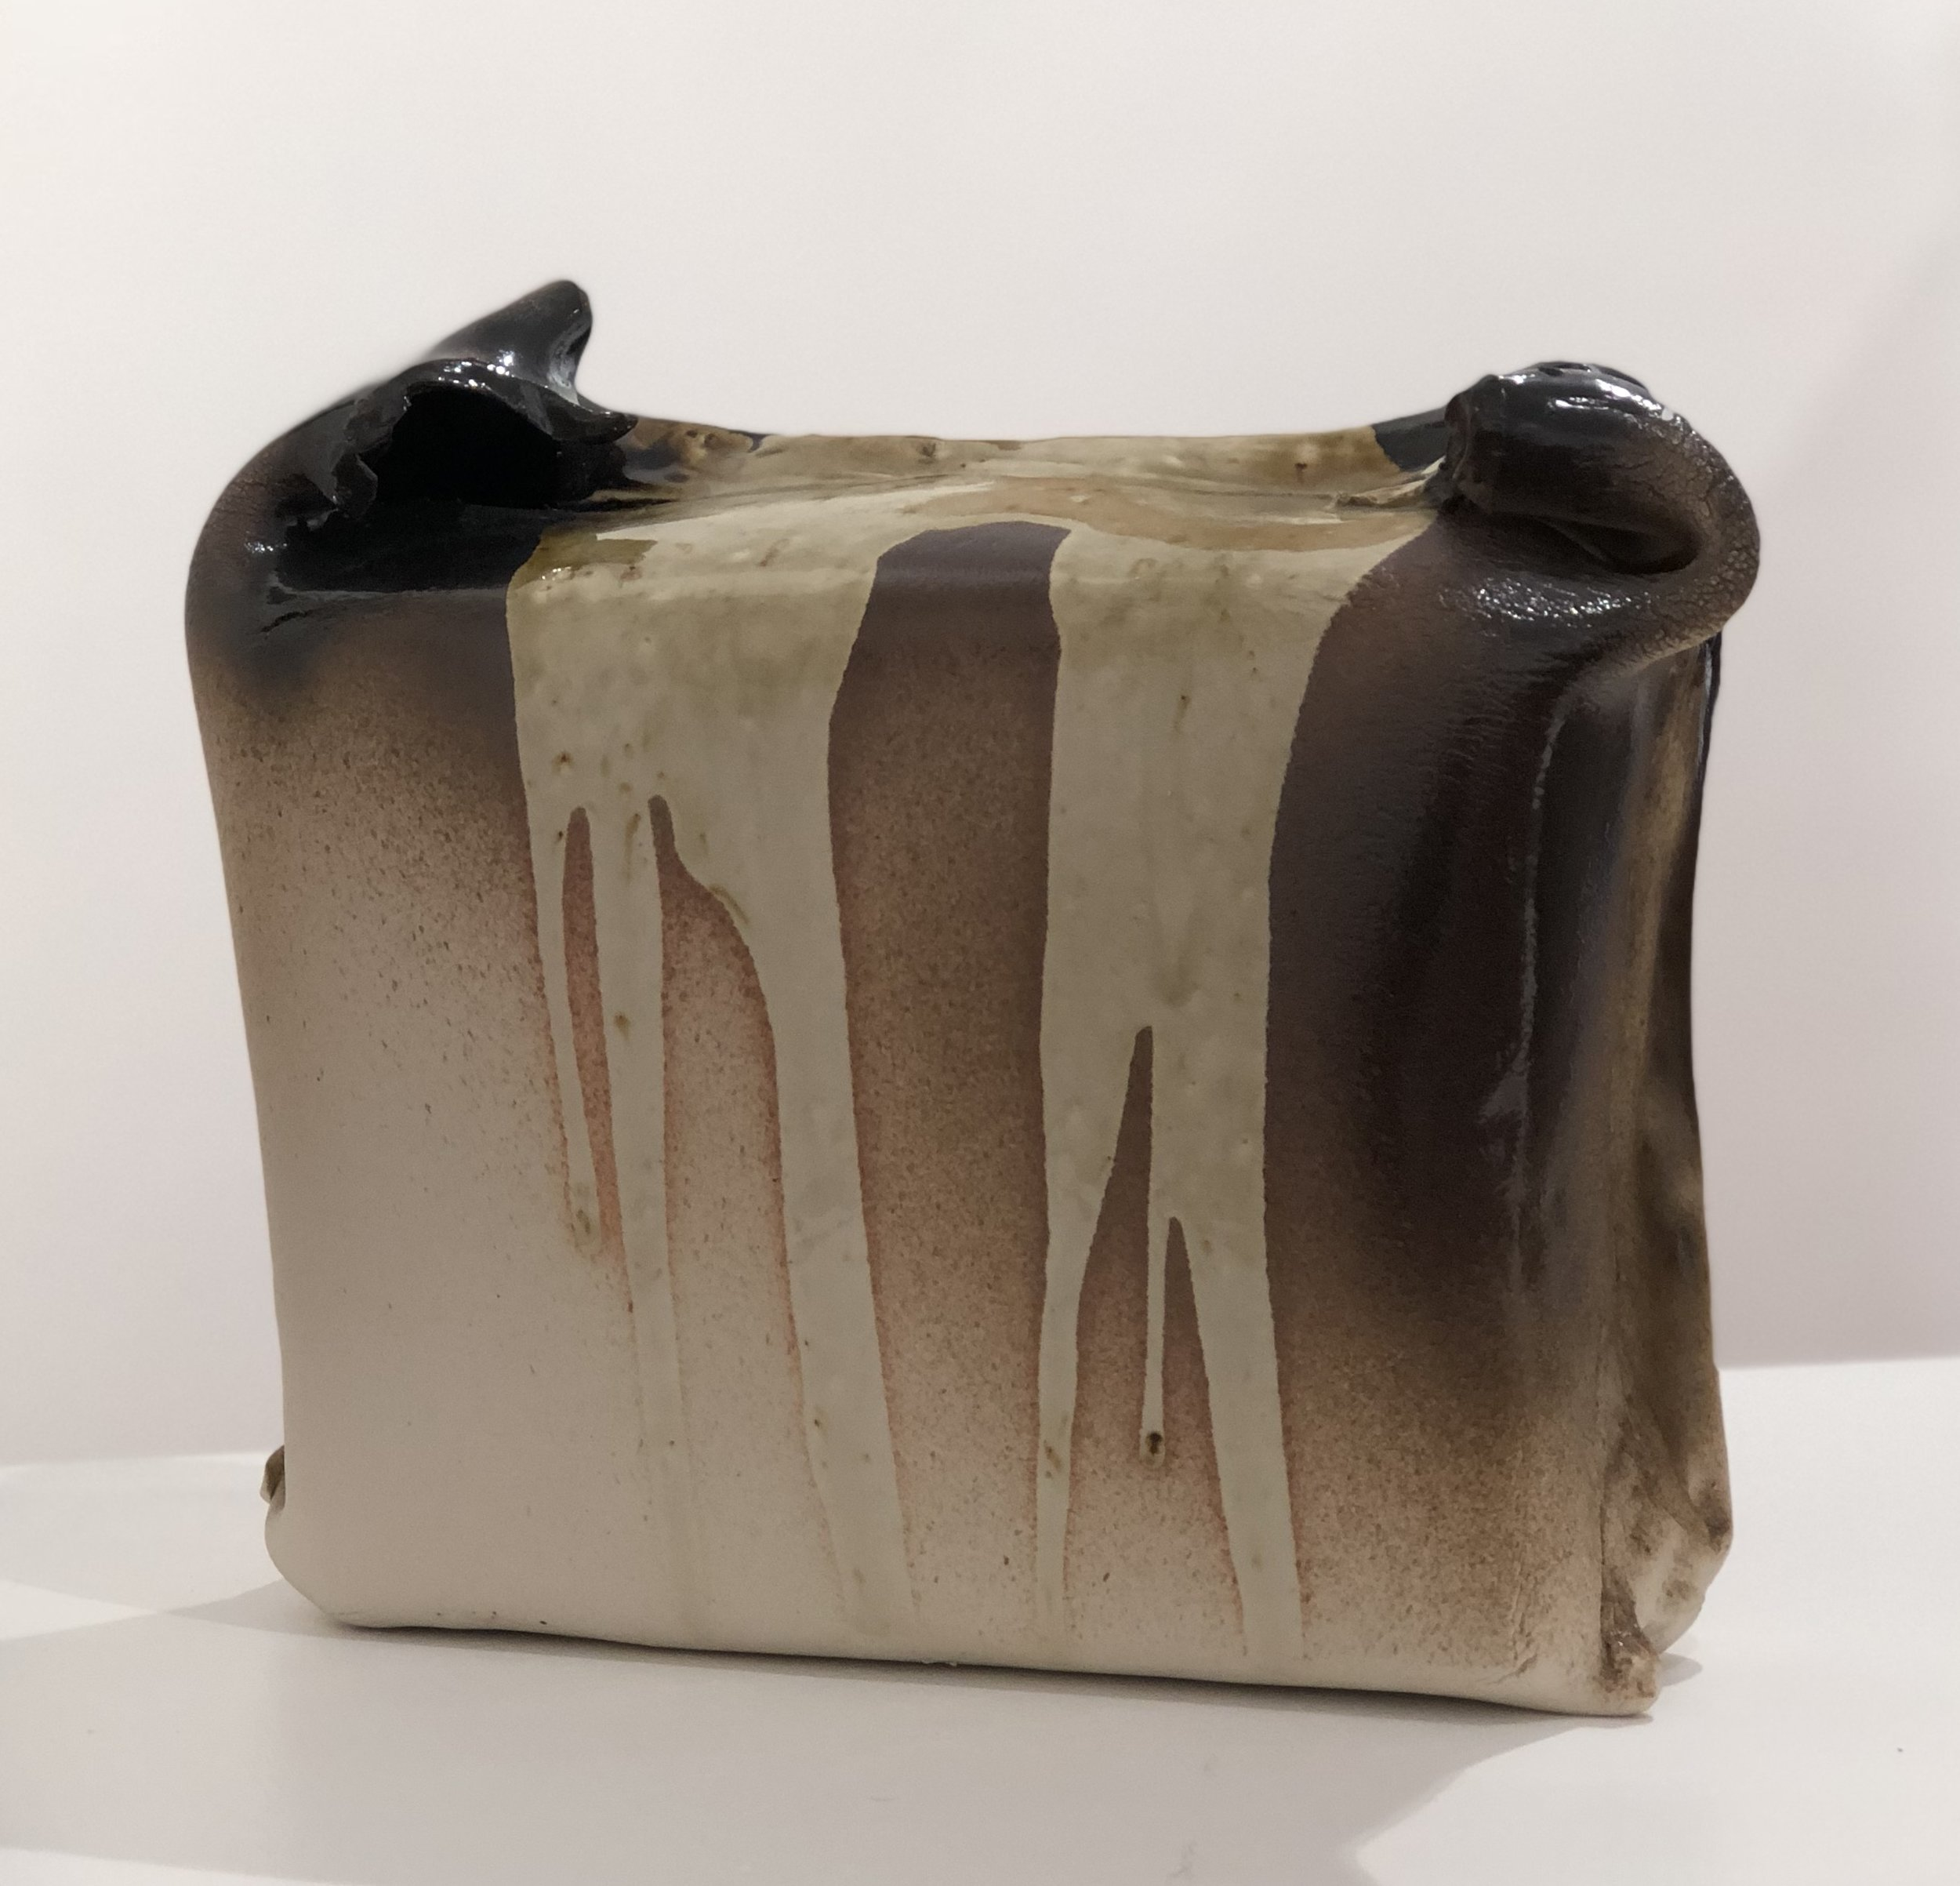 John Heaney  Blinky Palermo at the tea house  2018 stoneware with black and ash glazes 22 x 28 x 19cm $480.00